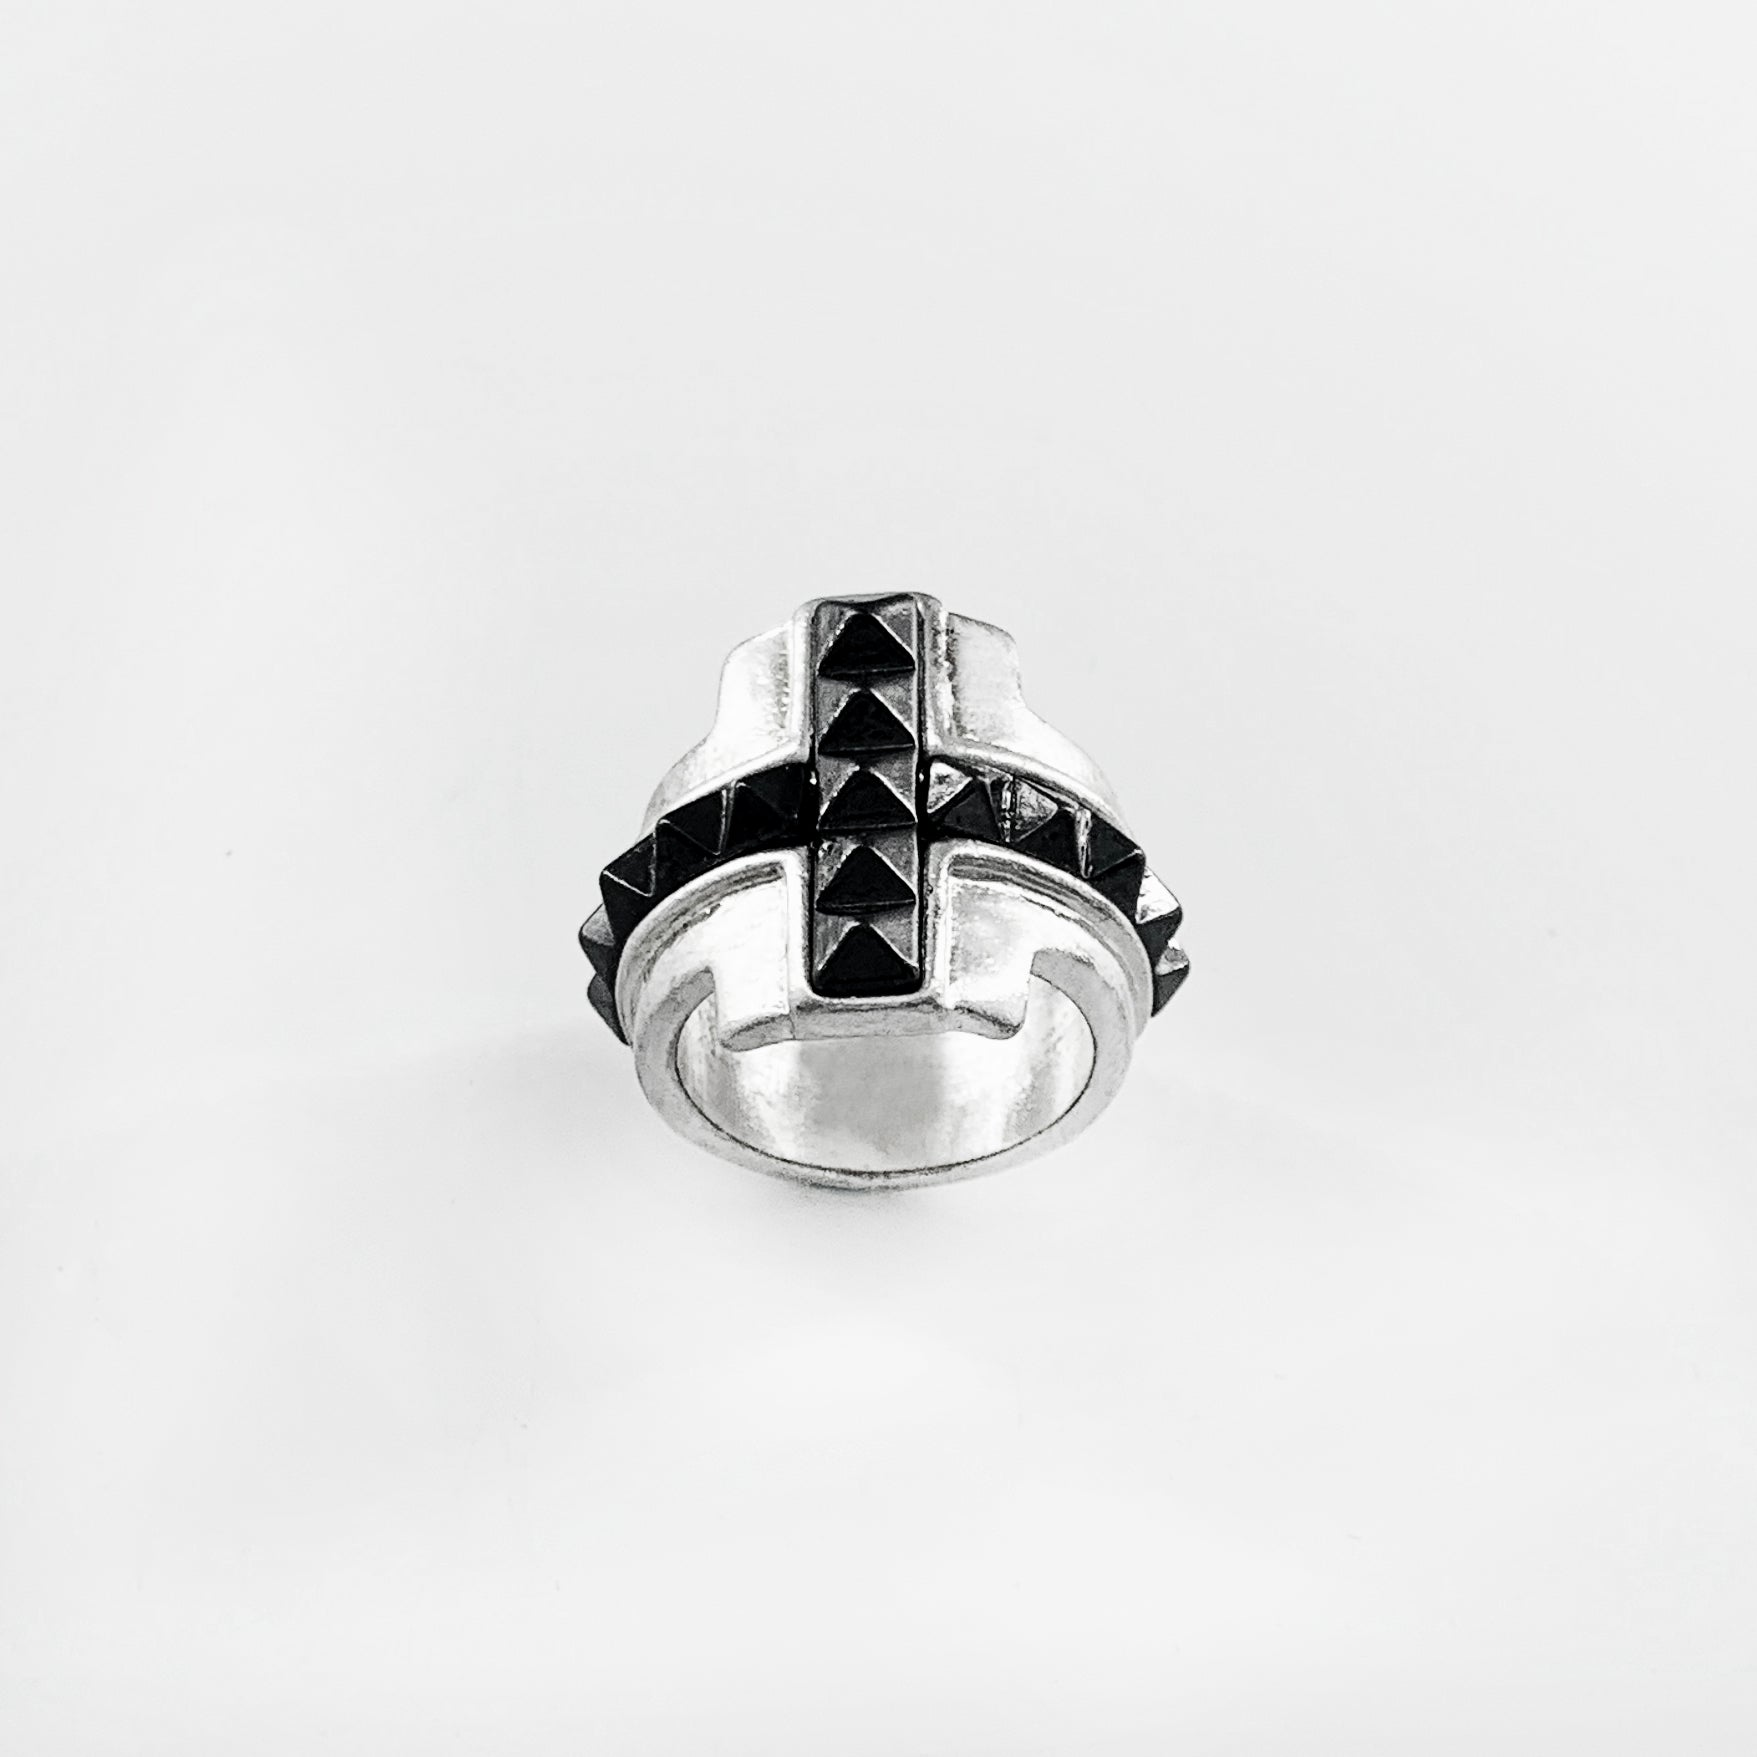 Silver ring with black studded cross